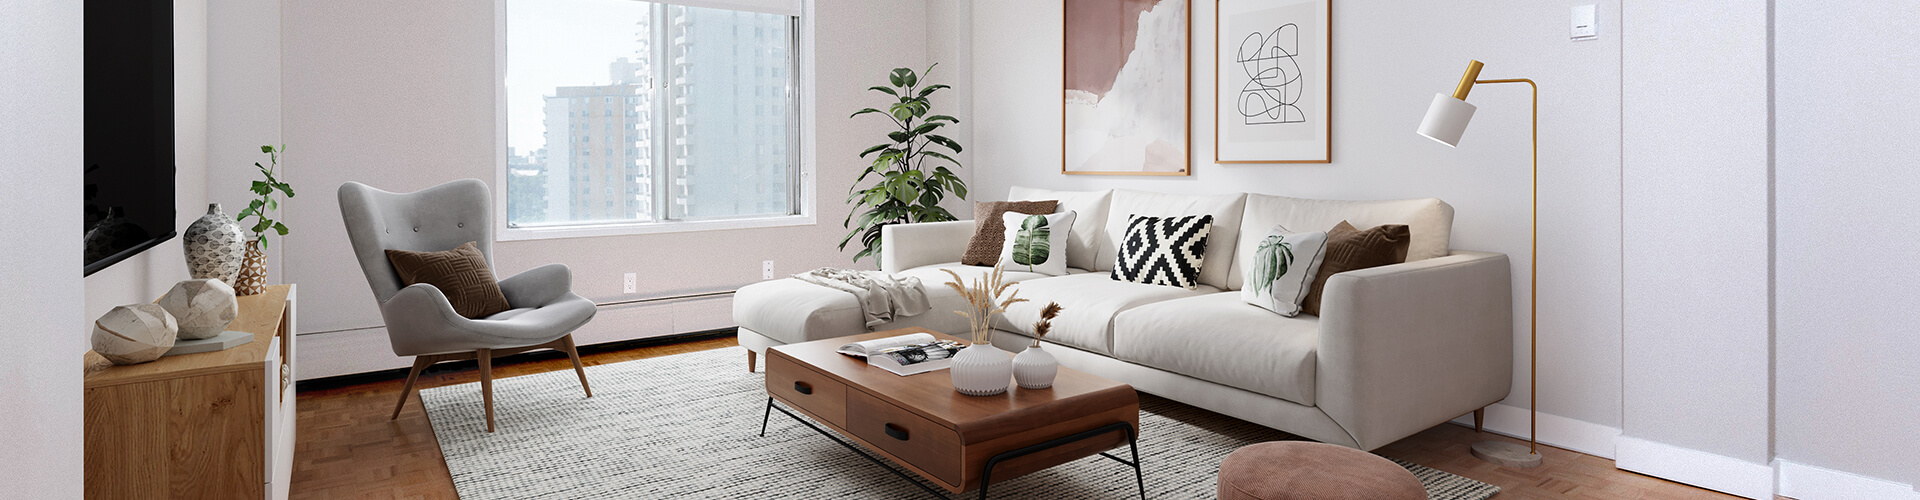 Stunning living room at The York House Apartments in Calgary. Rent with Minto Apartments.